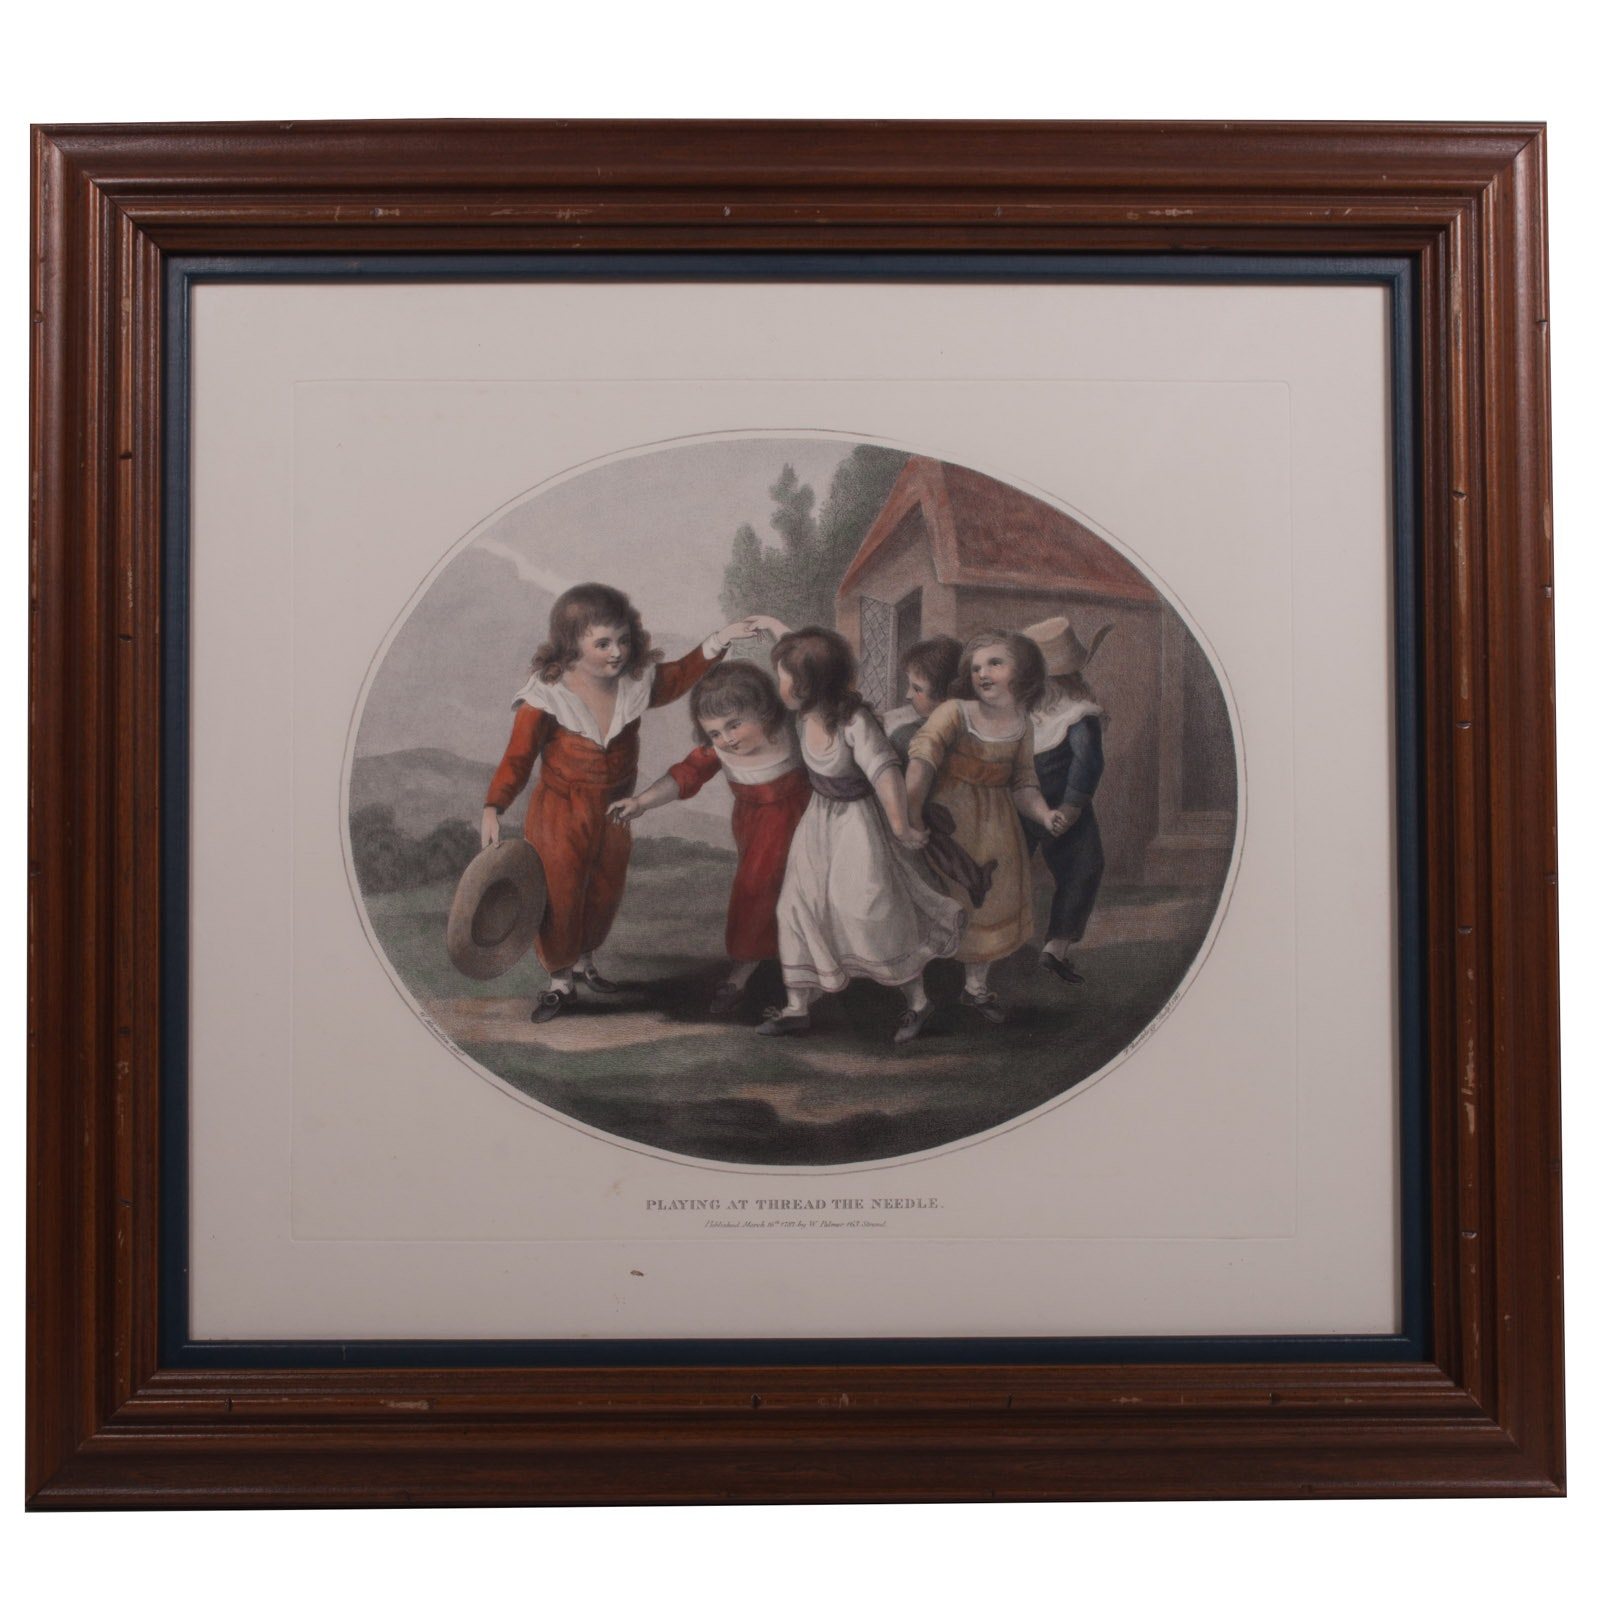 "Reprint Engraving on Paper After William Hamilton ""Playing at Thread the Needle"""